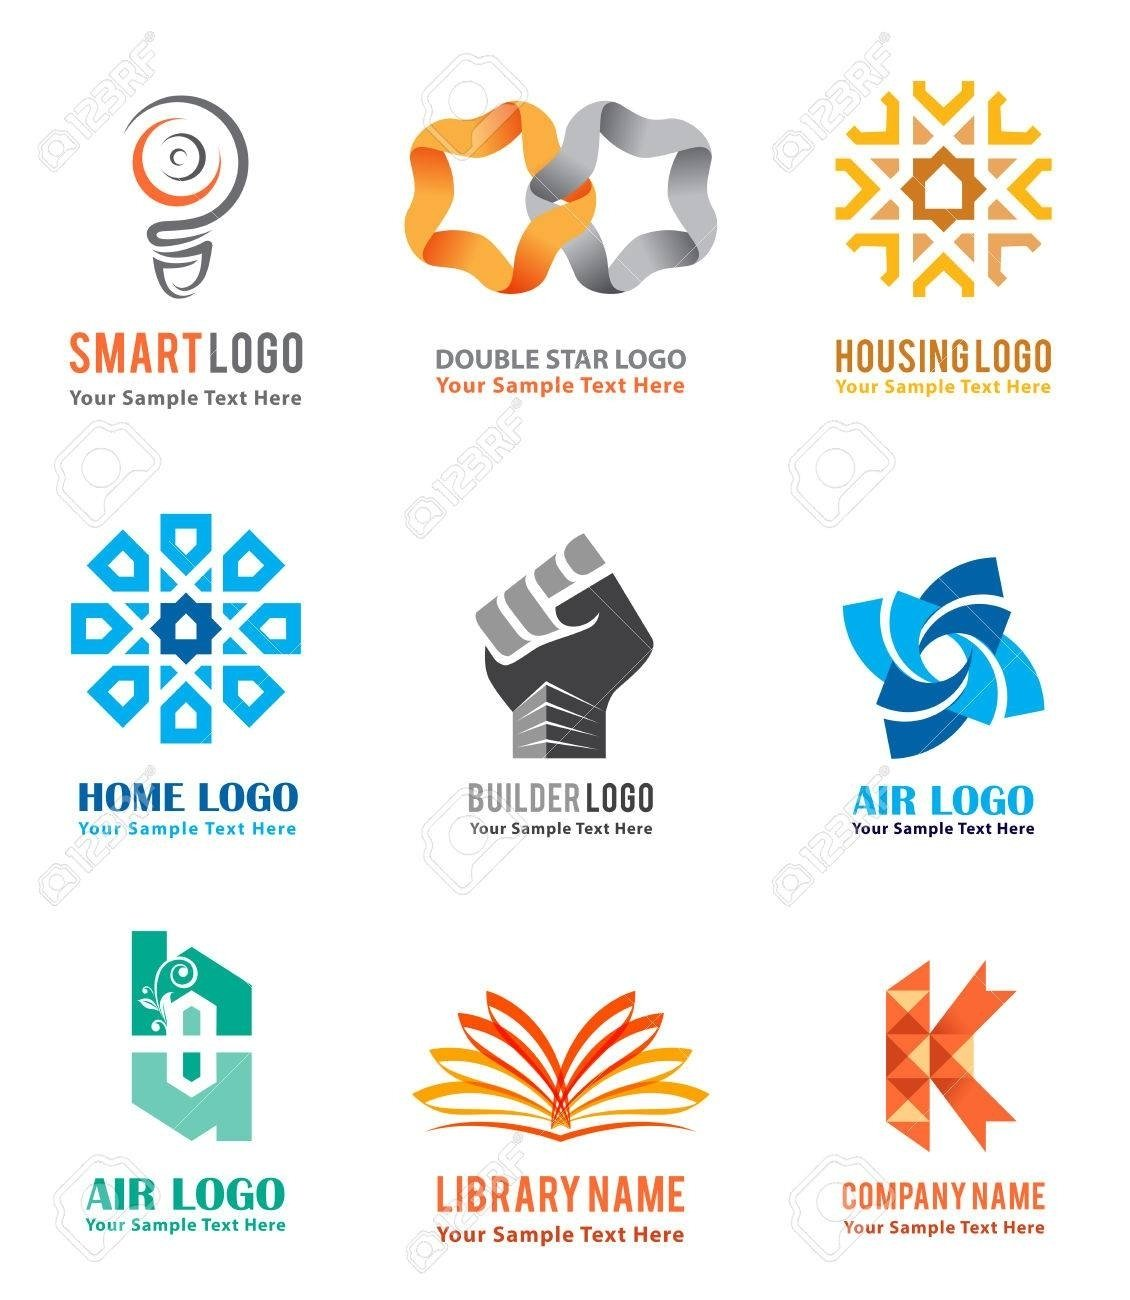 10 Beautiful Real Estate Company Names Ideas logo icons set for company identity branding like smart ideas 2021